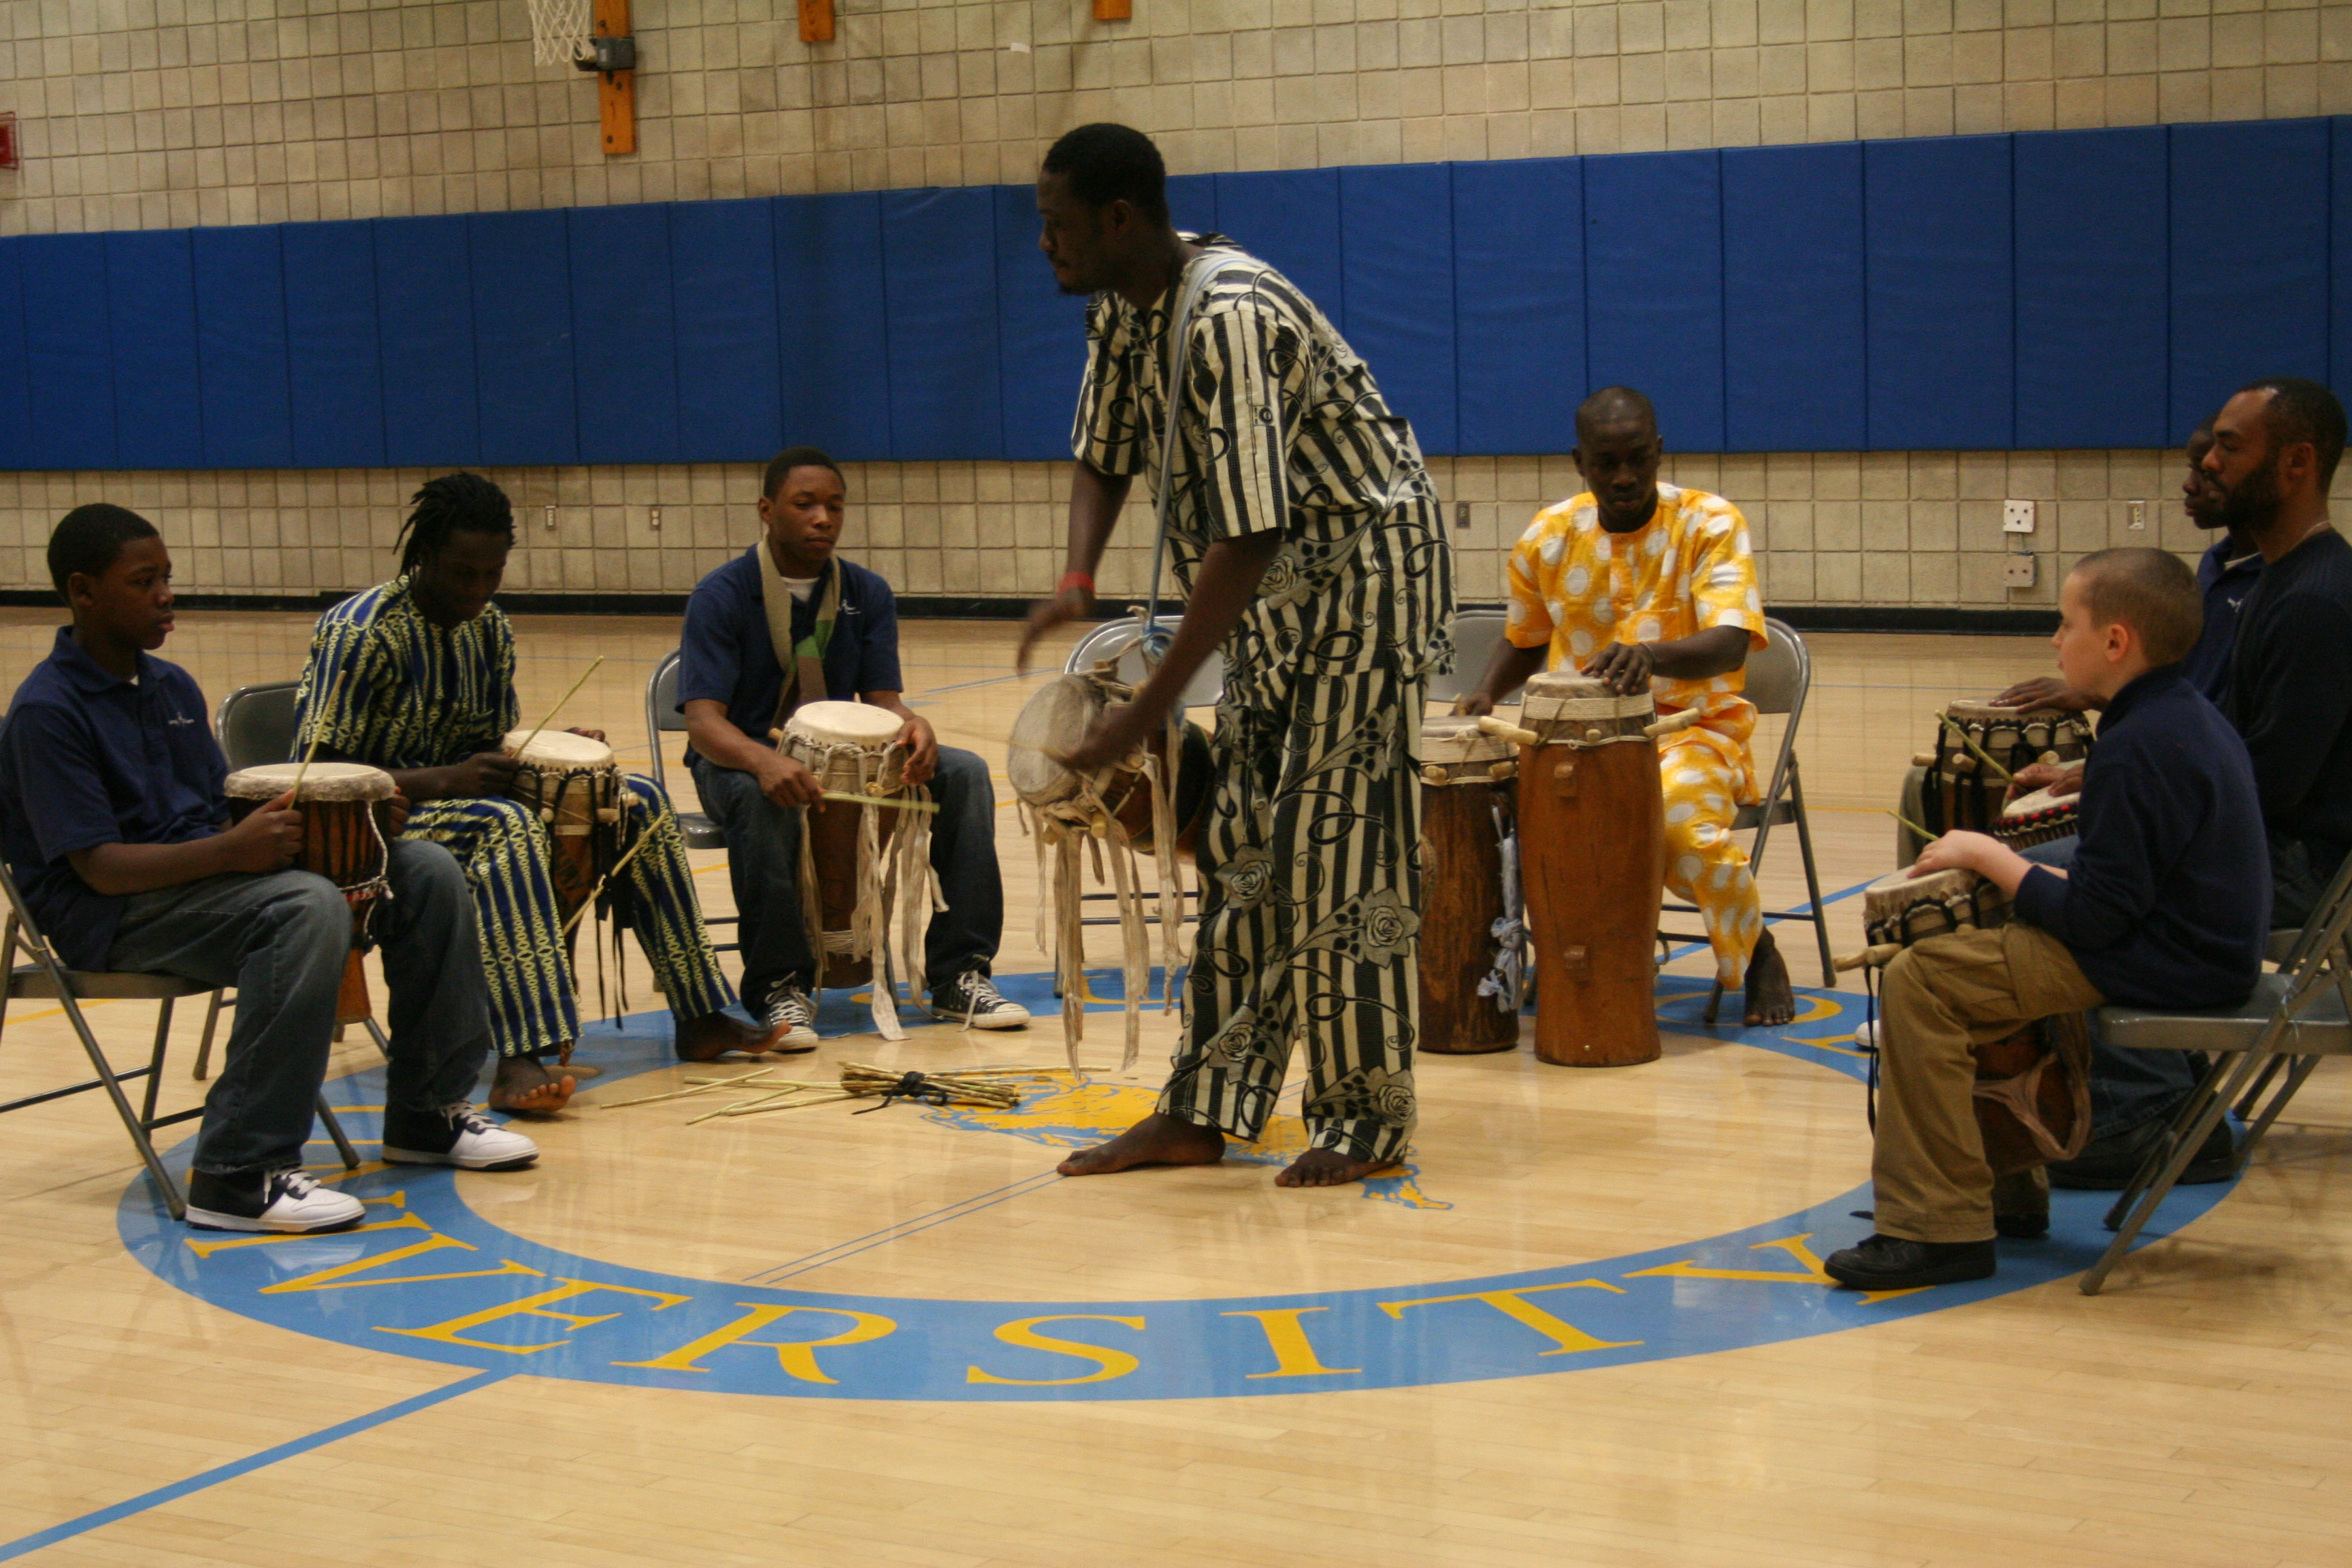 Moustapha leads Young Acievers School students.